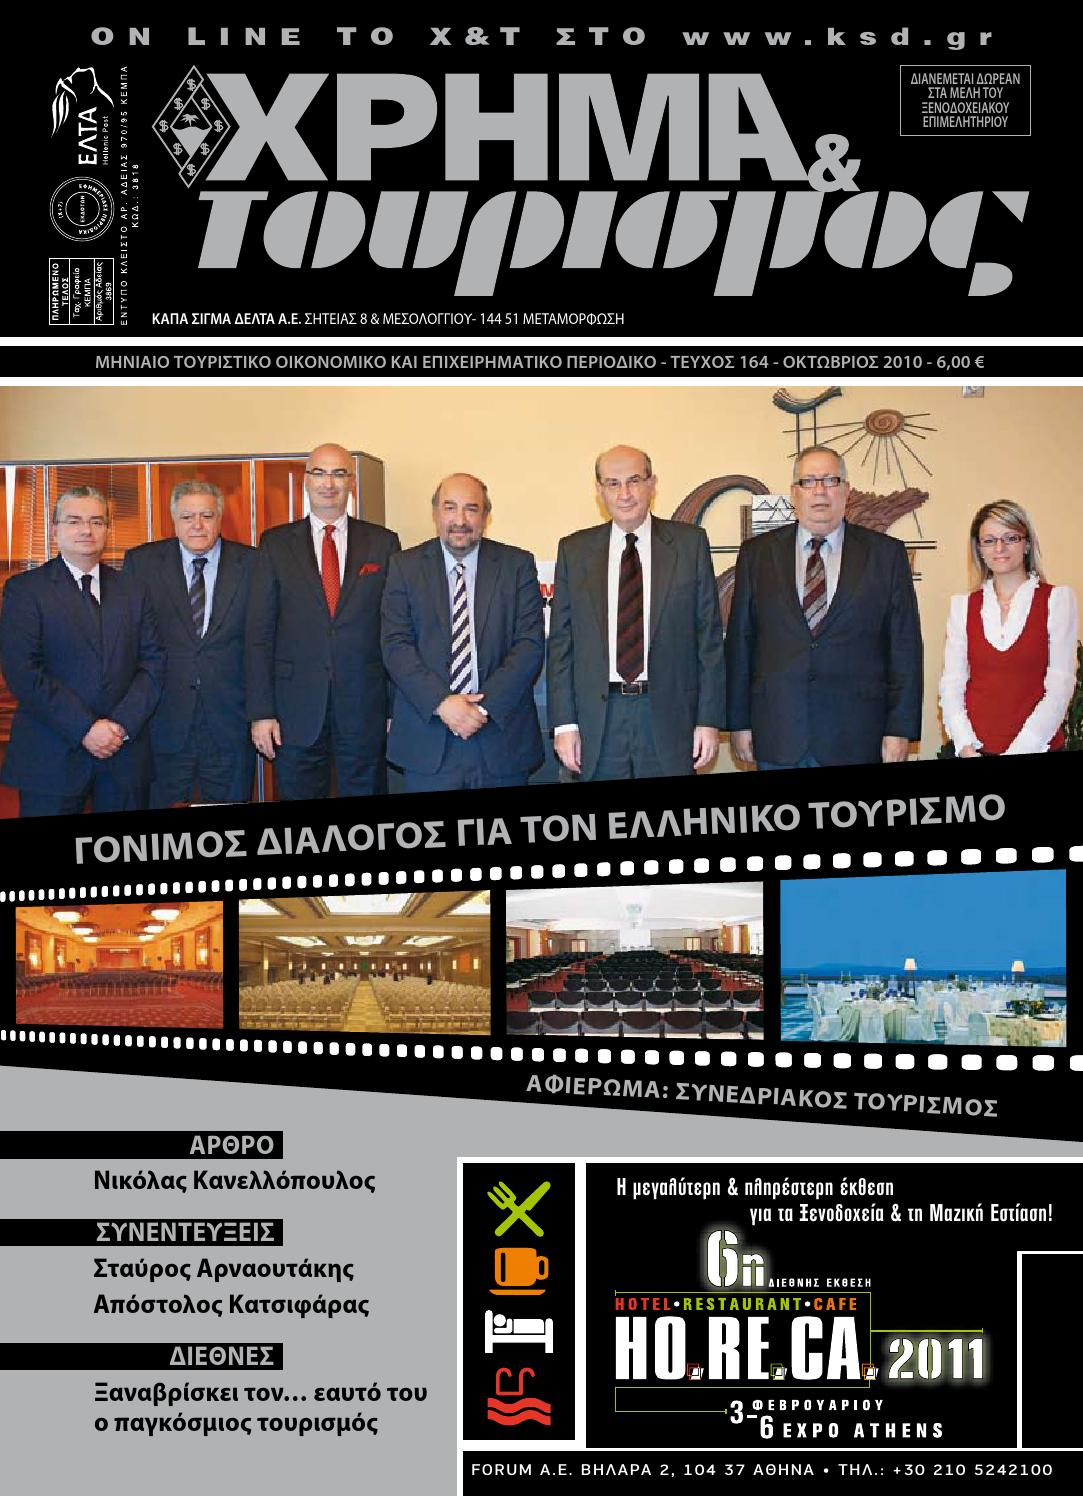 e3d7ce45c65 Τεύχος Οκτωβρίου 2010 - Χρήμα & Τουρισμός by KSD S.A - issuu